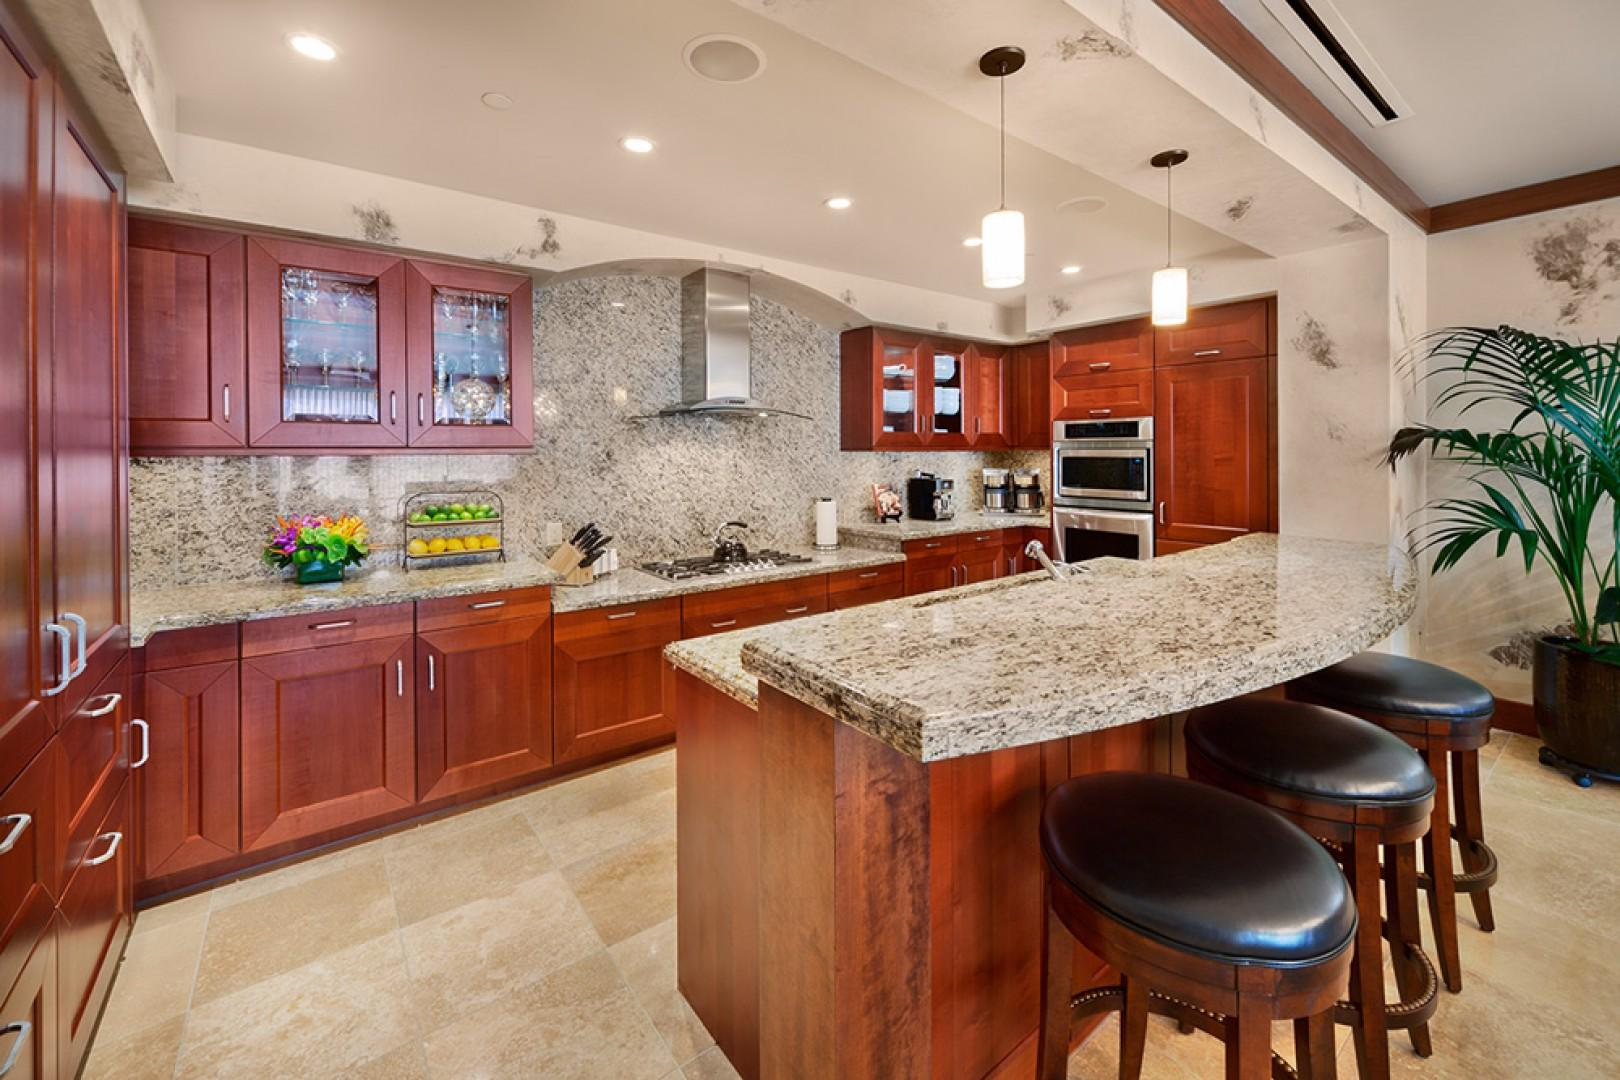 The A201 Kitchen with a full assortment of Cooking, Dining and Serving Supplies including an Espresso Maker and Dual Coffee Makers